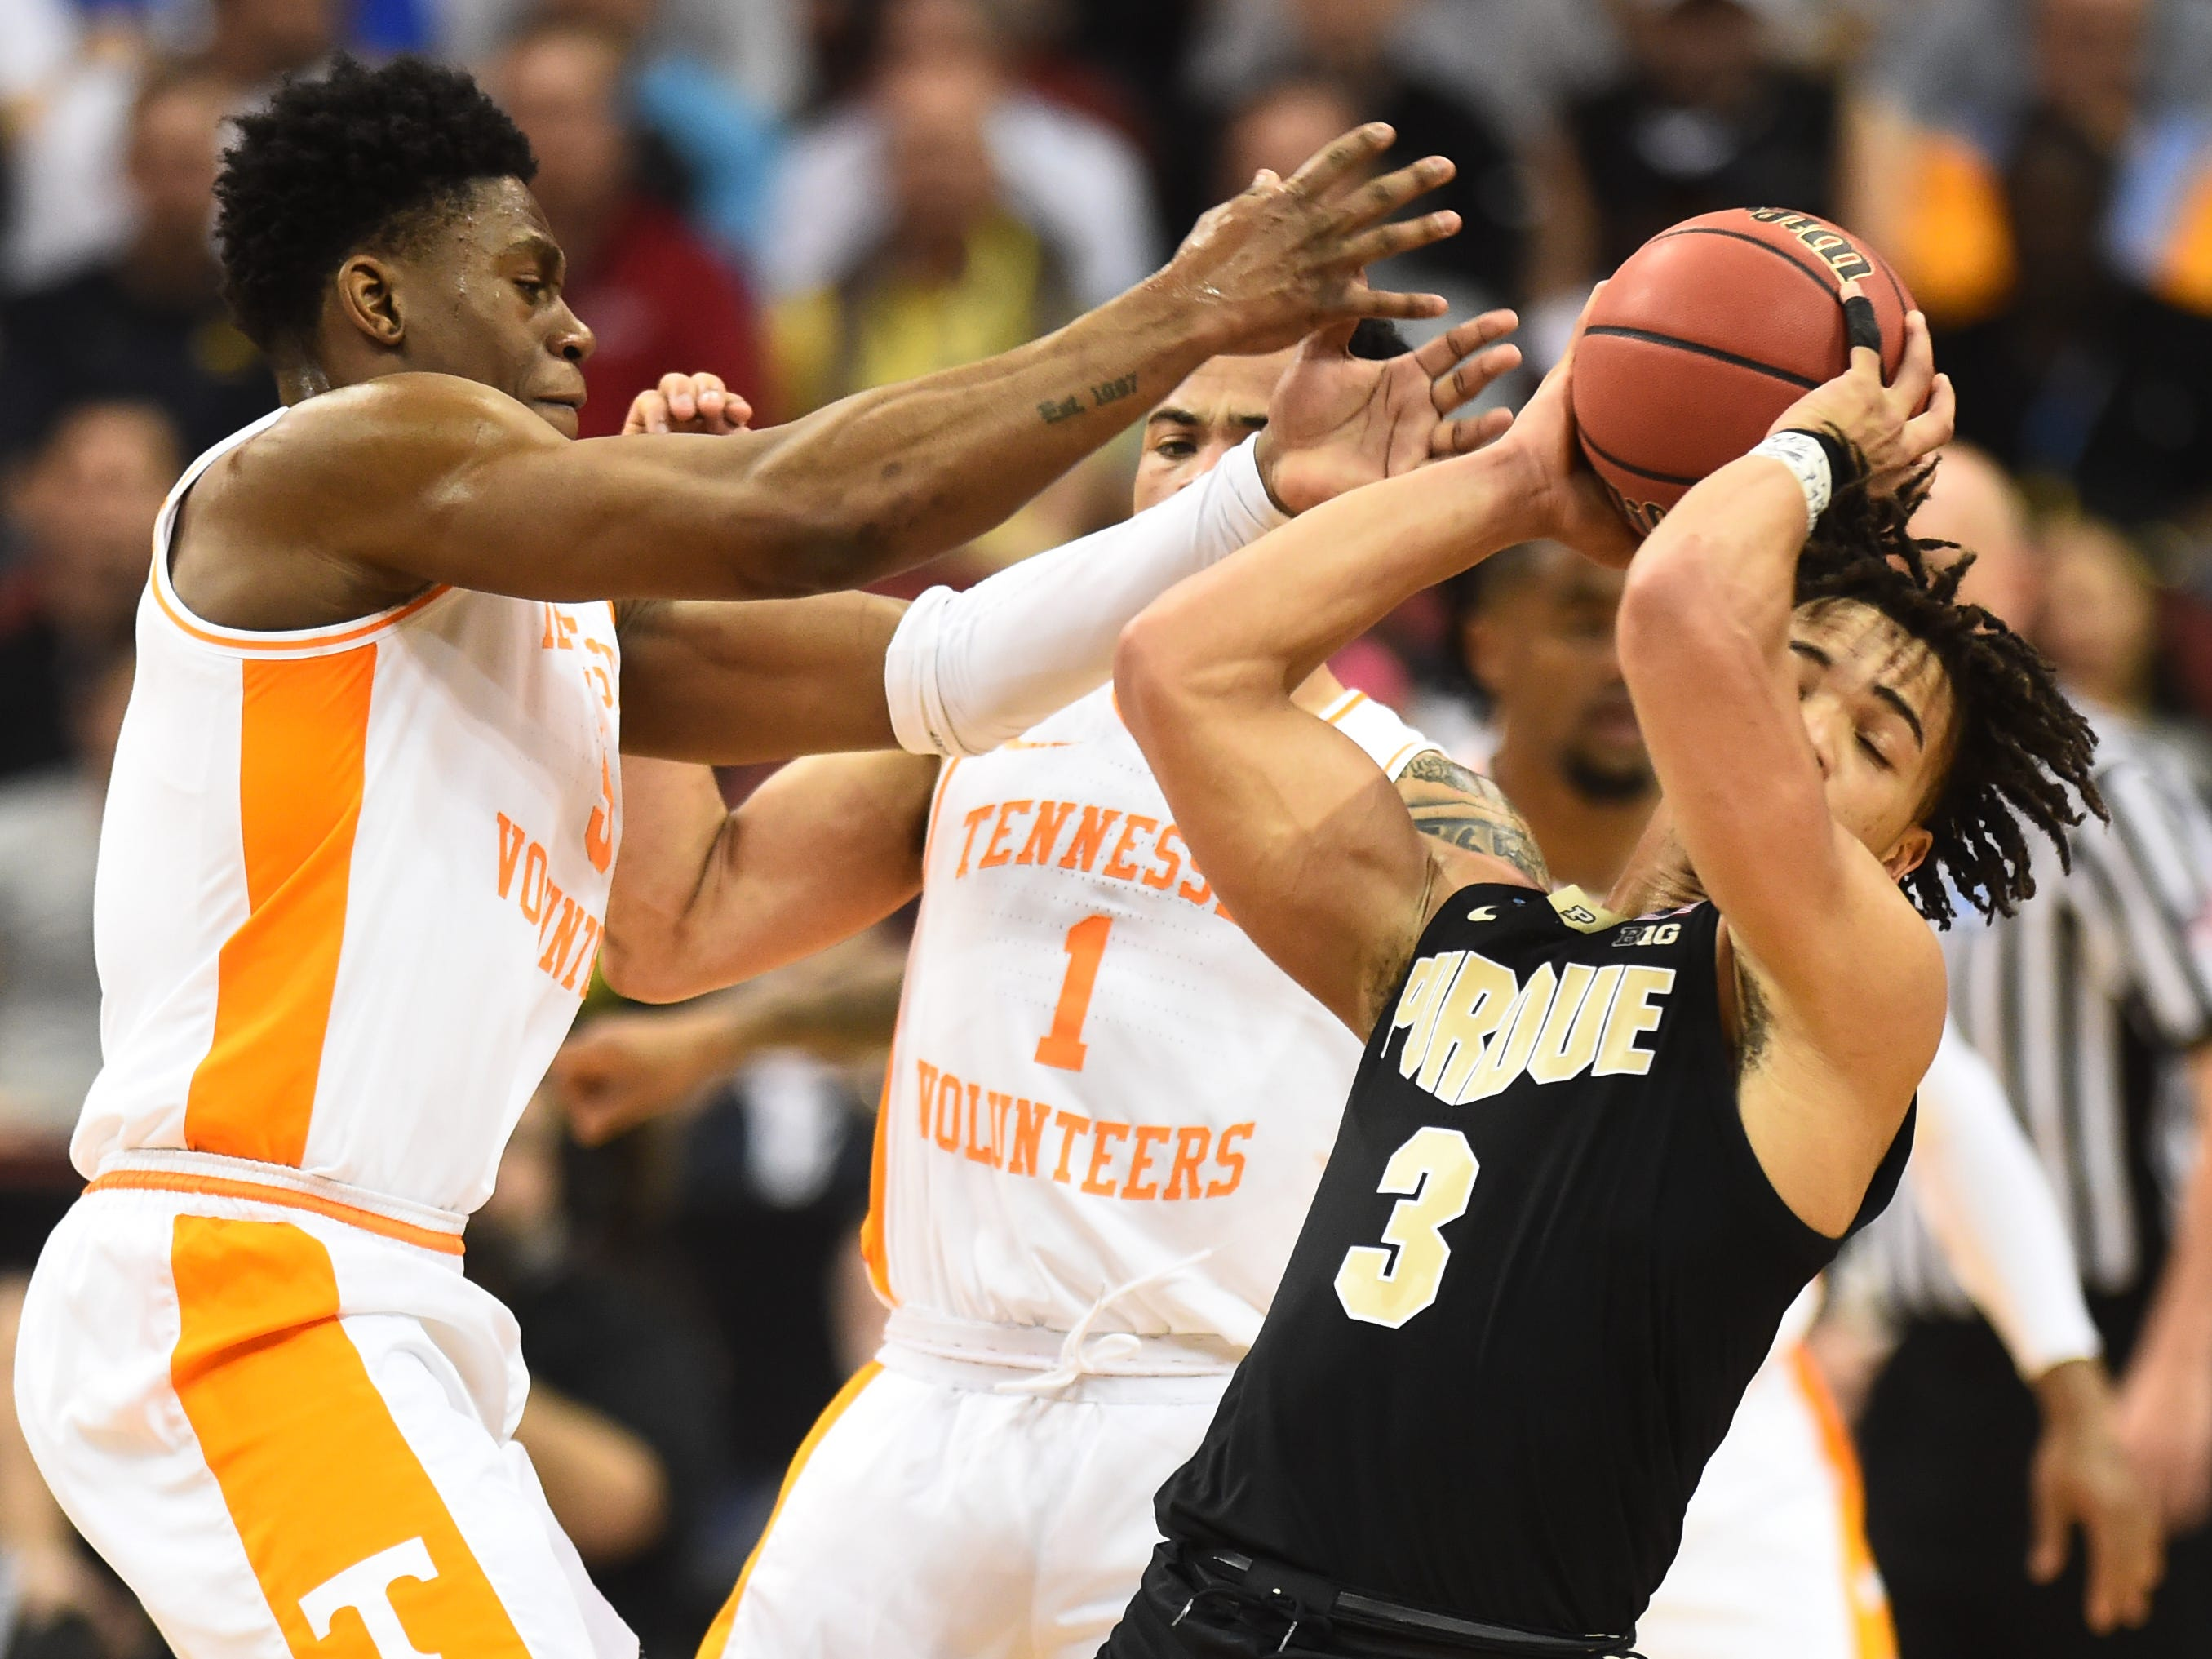 Tennessee guard Admiral Schofield (5) and guard Lamonte Turner (1) defend against Purdue guard Carsen Edwards (3) during the first half of the Sweet 16 game in the NCAA Tournament Thursday, March 28, 2019, at the KFC Yum! Center in Louisville, Ky.